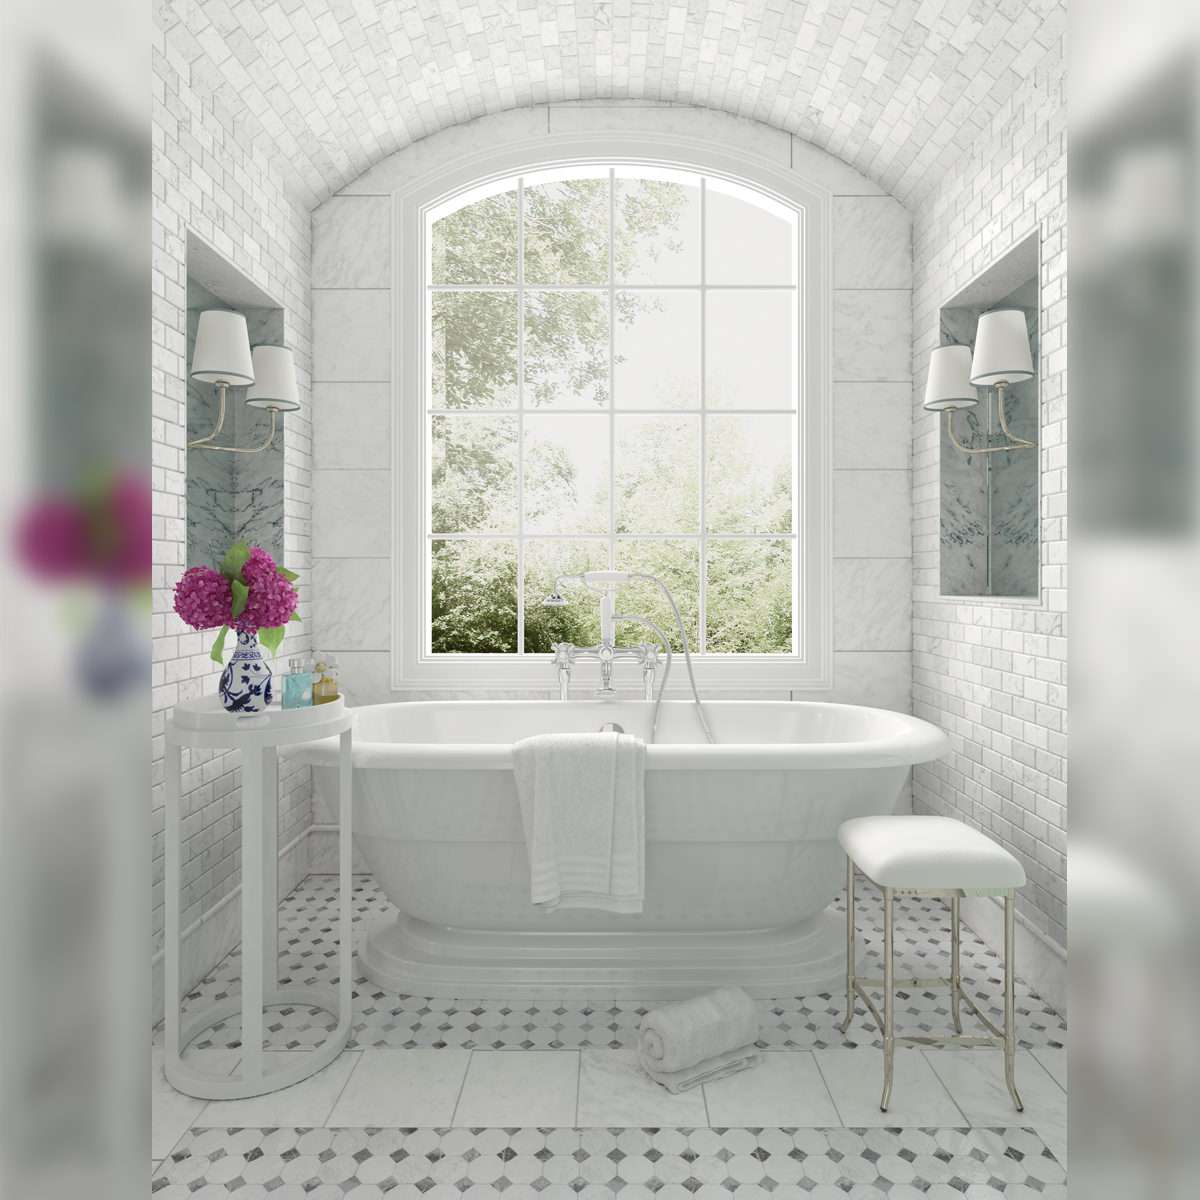 An alumhybrid architechtural white window in a white bathroom with a view of the outside greenery.